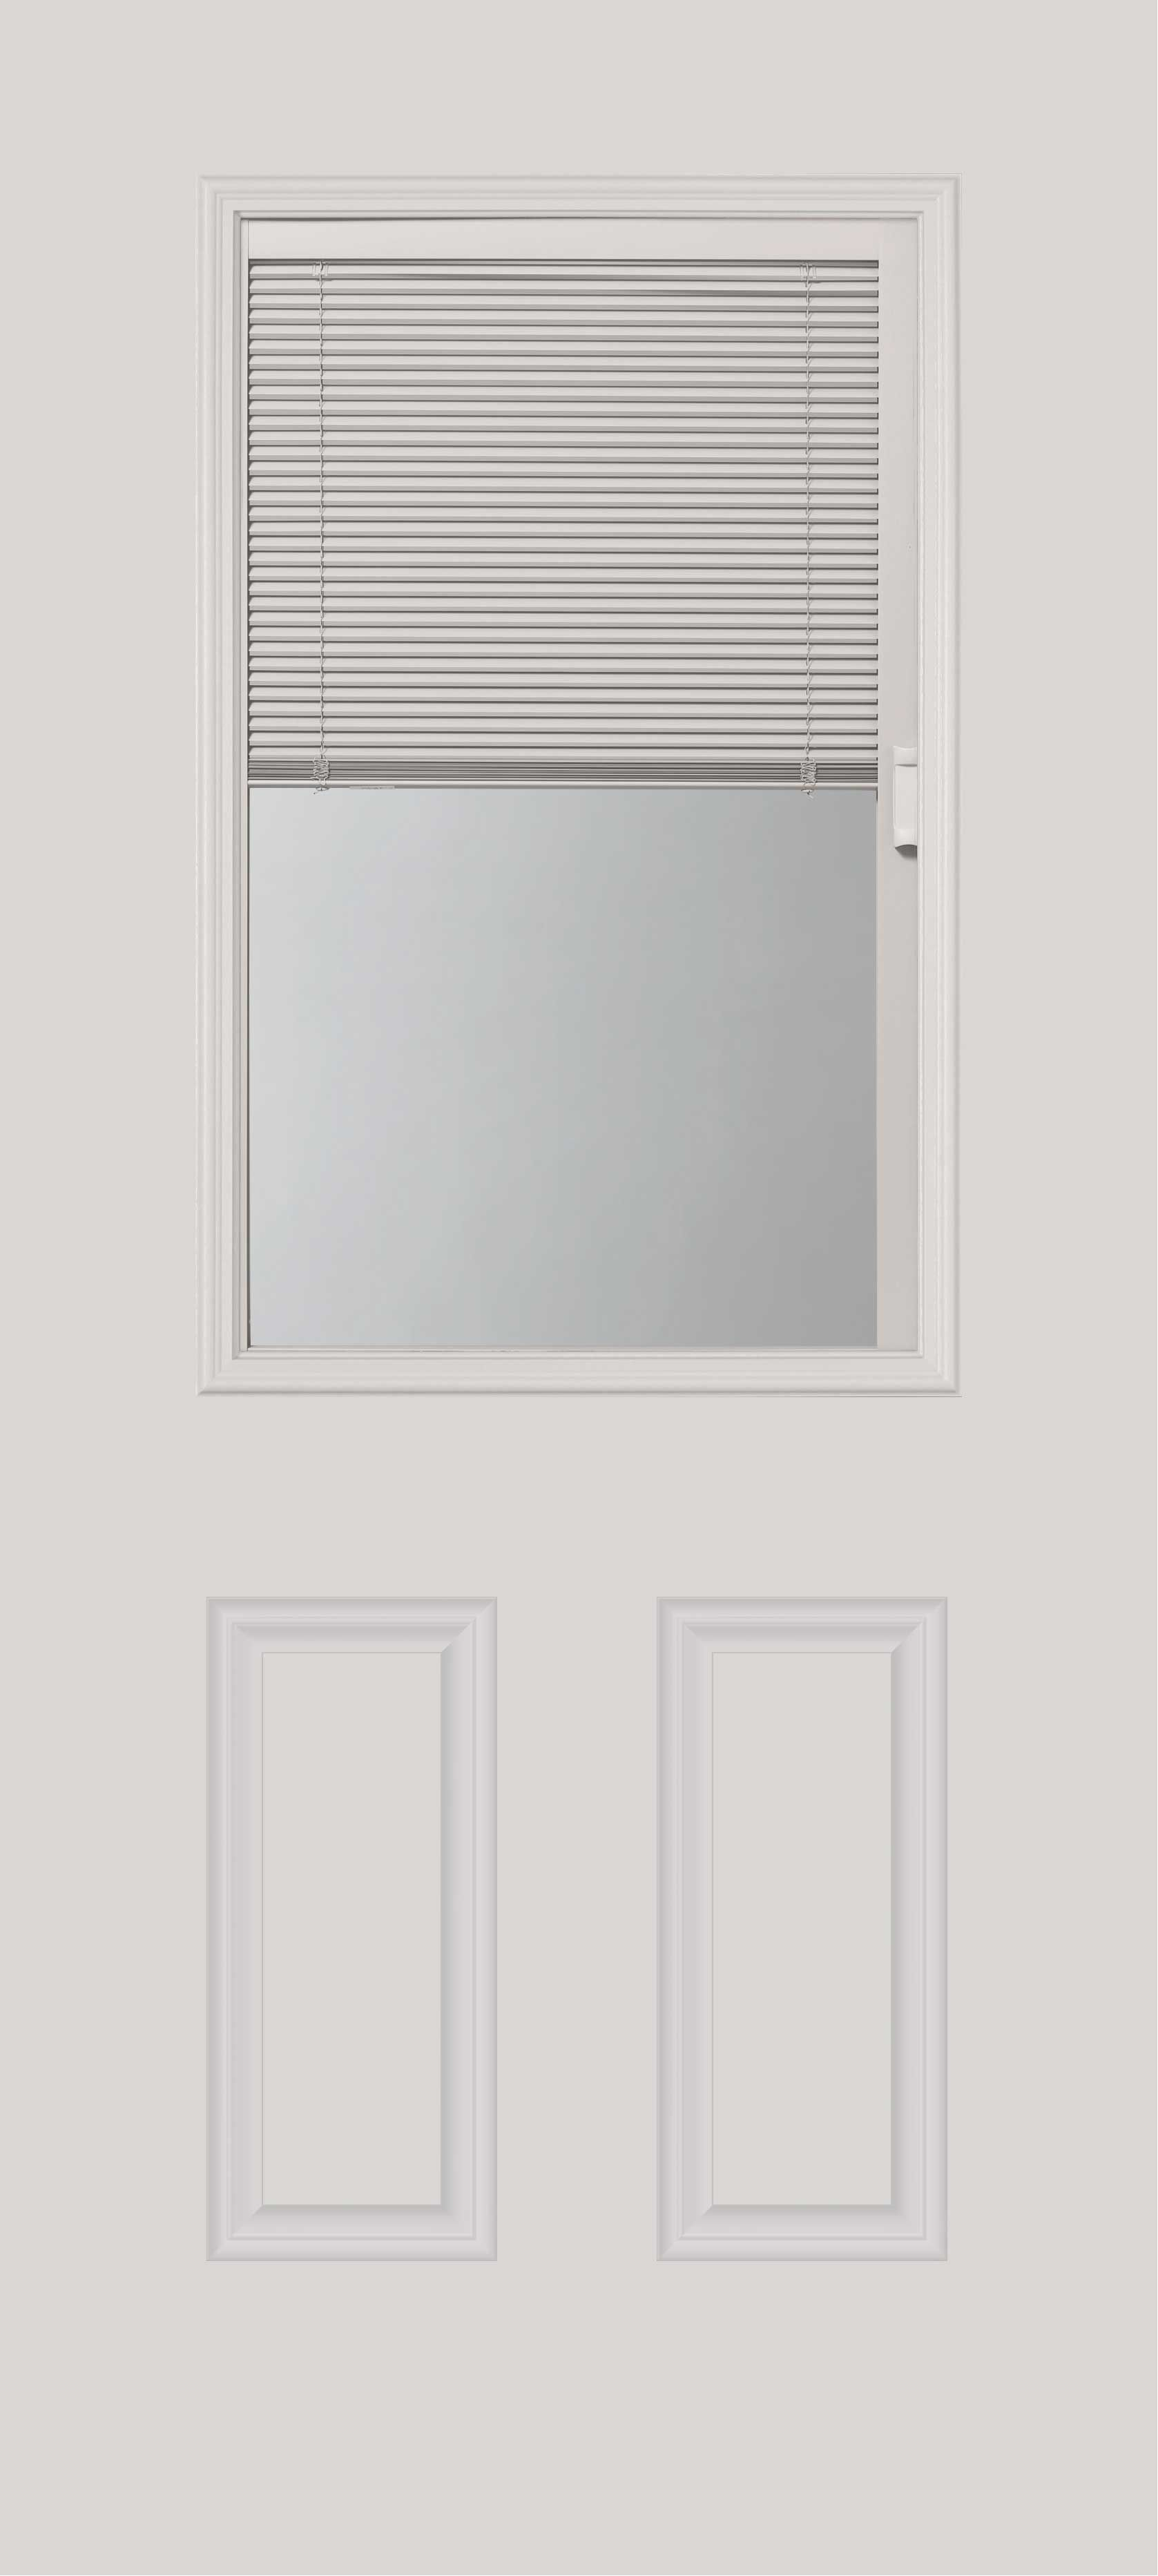 Odl Light Touch Built In Blinds Cordless Blinds Enclosed Blinds For Doors French Doors Interior Cordless Blinds French Doors